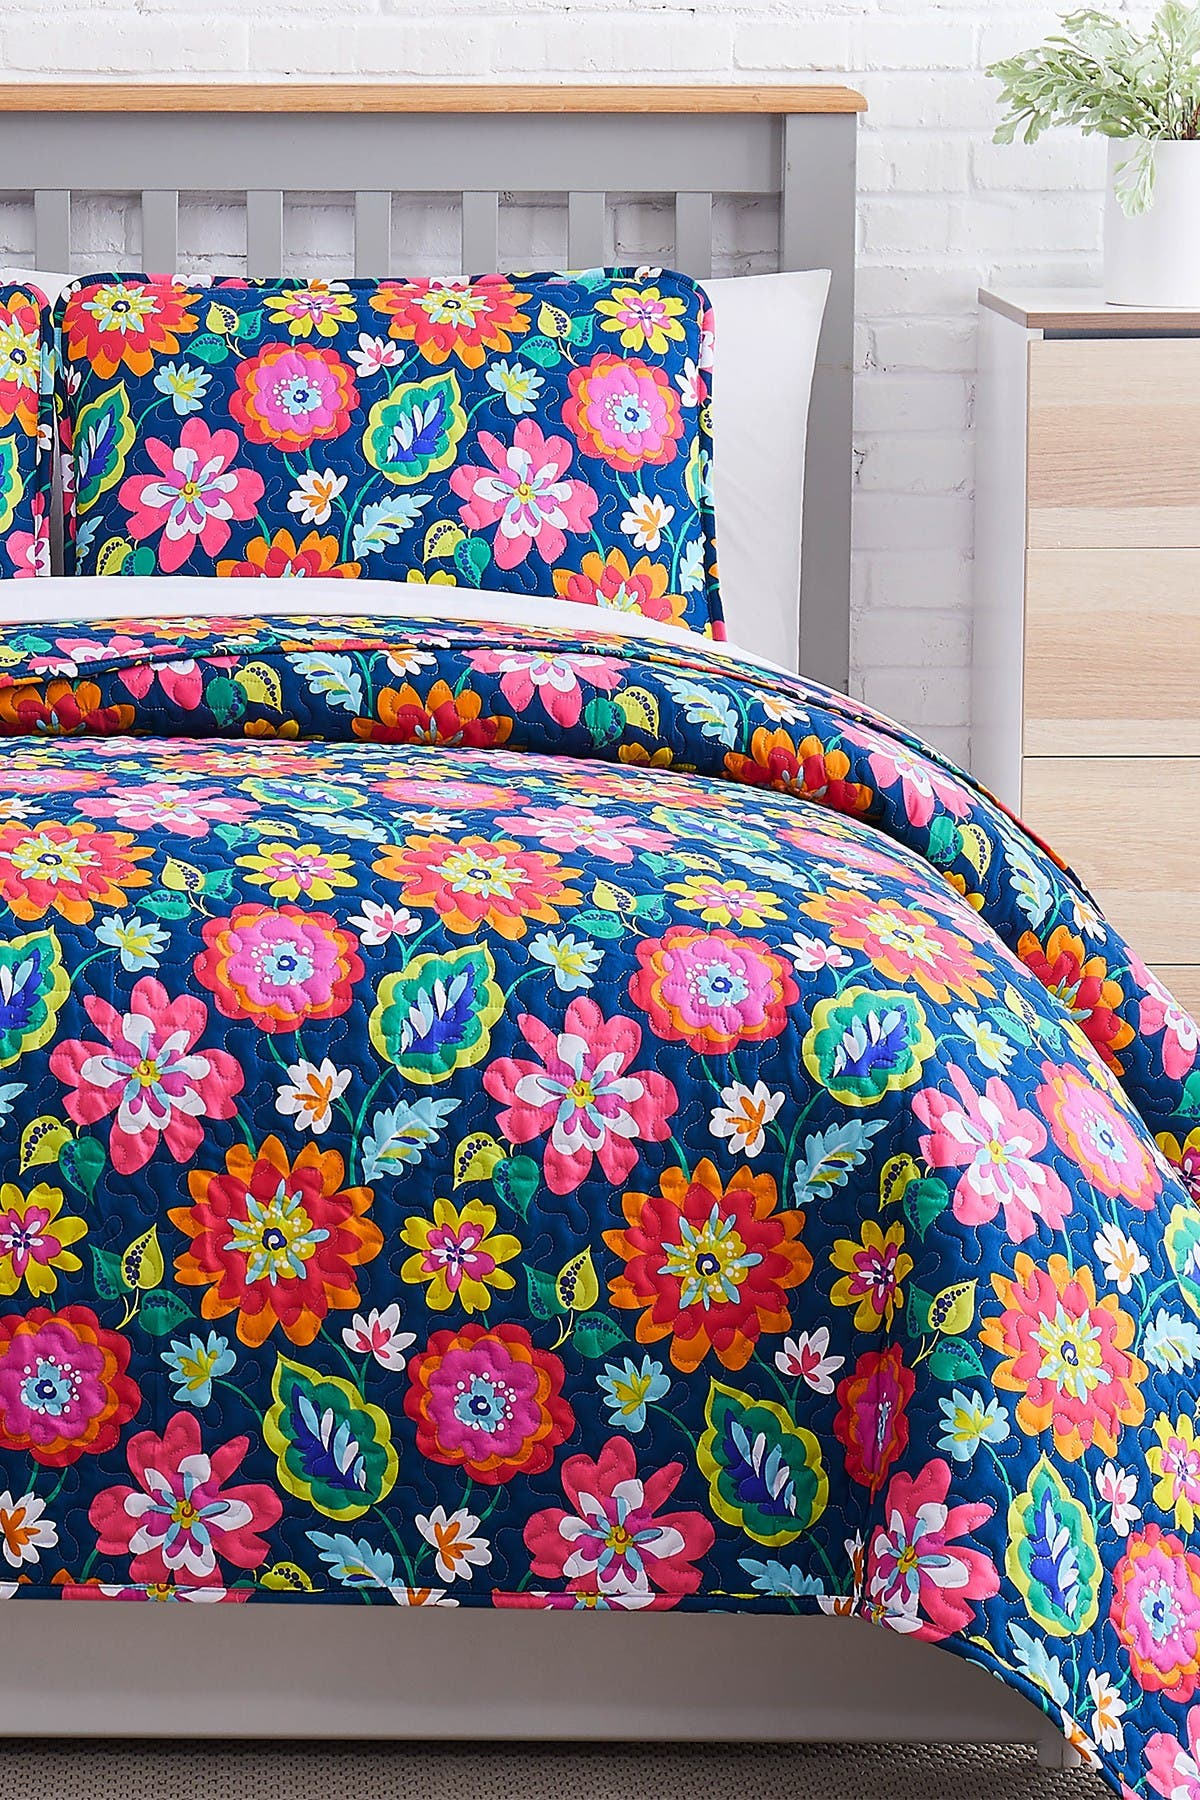 Image of SOUTHSHORE FINE LINENS Luxury Collection Oversized Quilt 3-Piece Set - King/California King